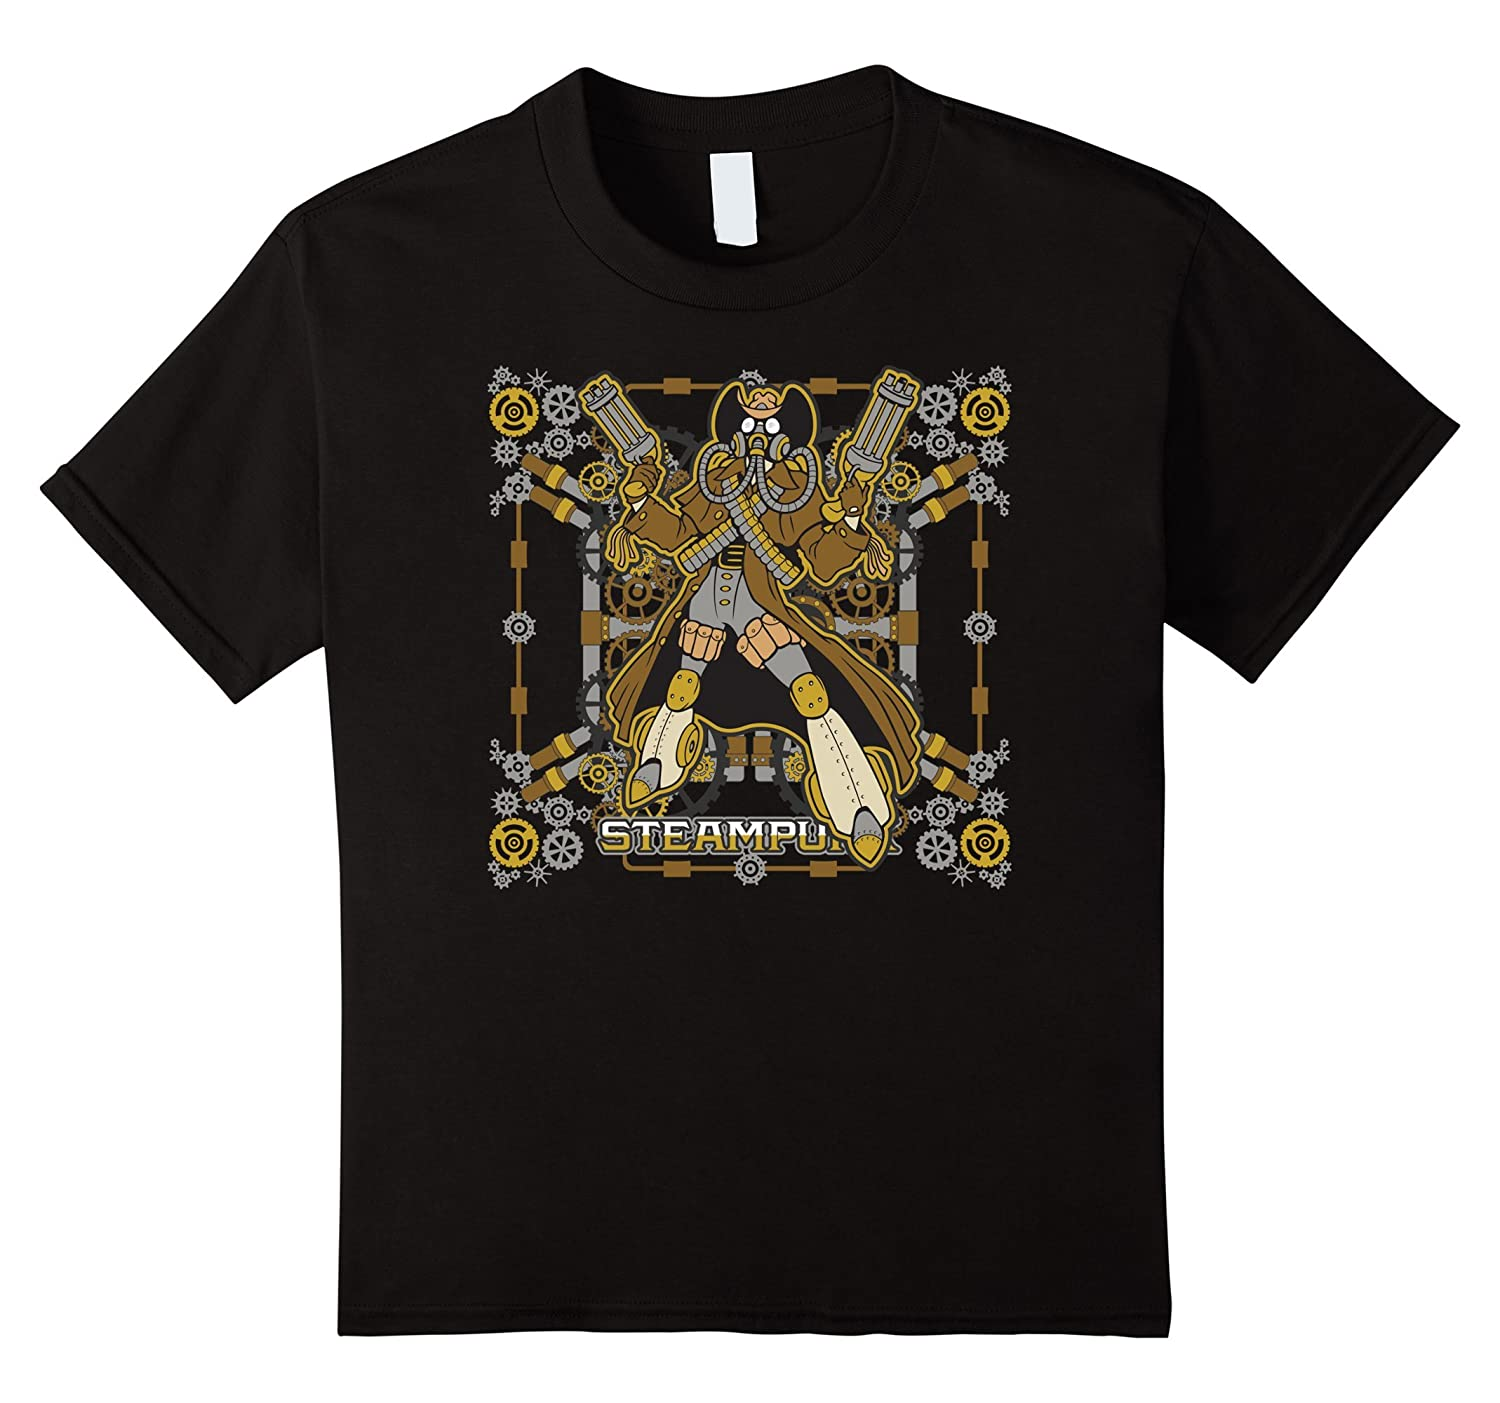 Steampunk Mechanical Cowboy T-shirt